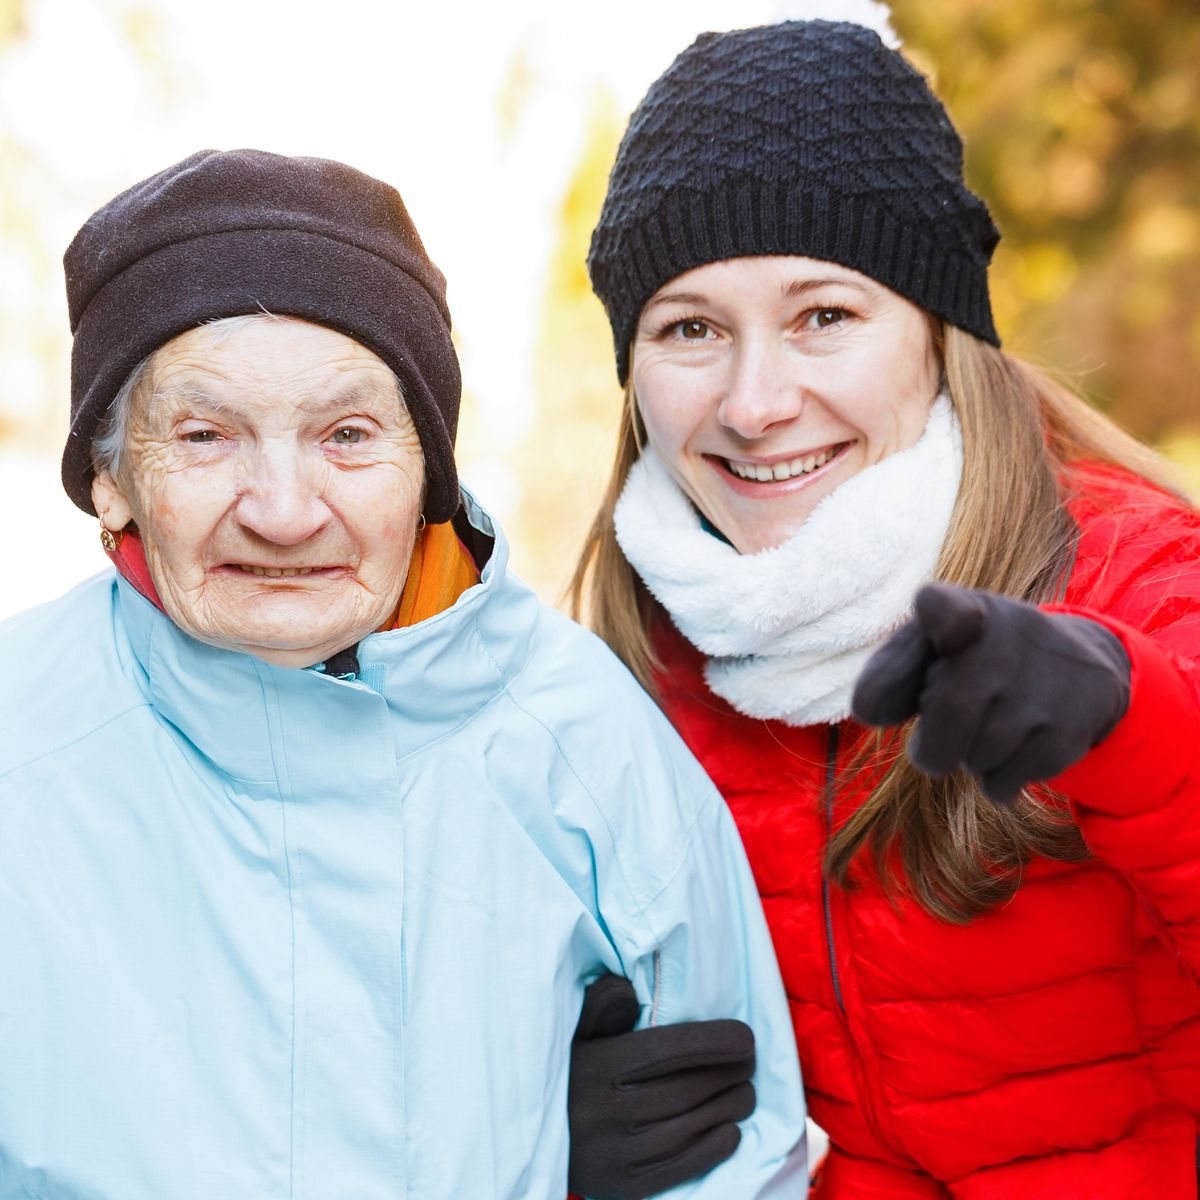 Caregivers energize yourself this winter with some